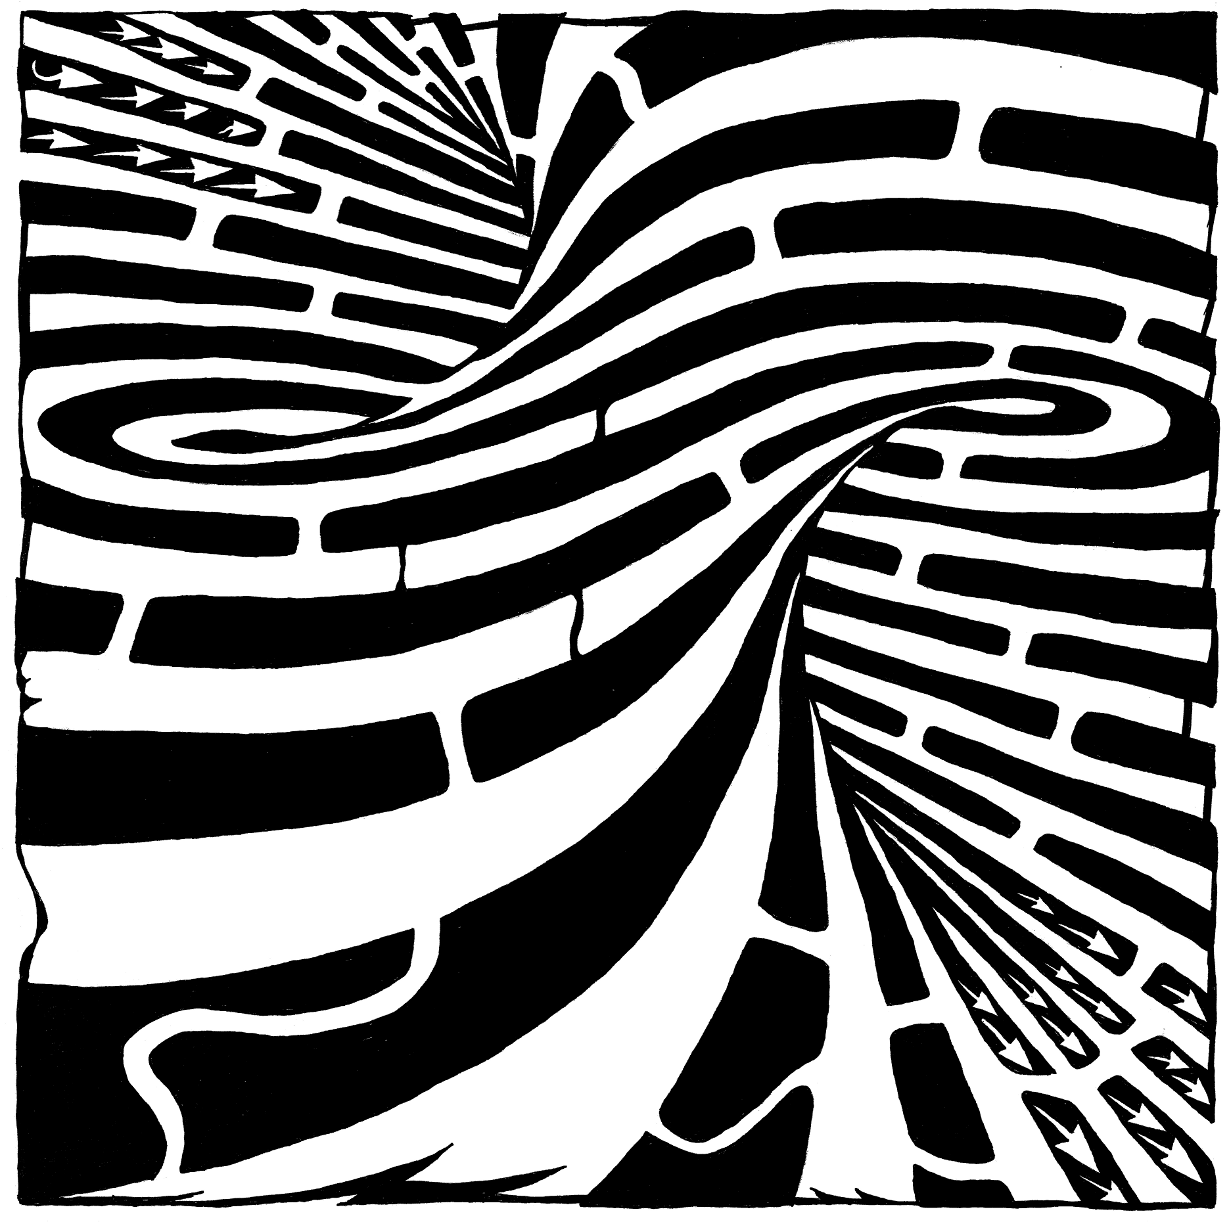 forming tornado maze, the twisted and warped maze by Yonatan Frimer